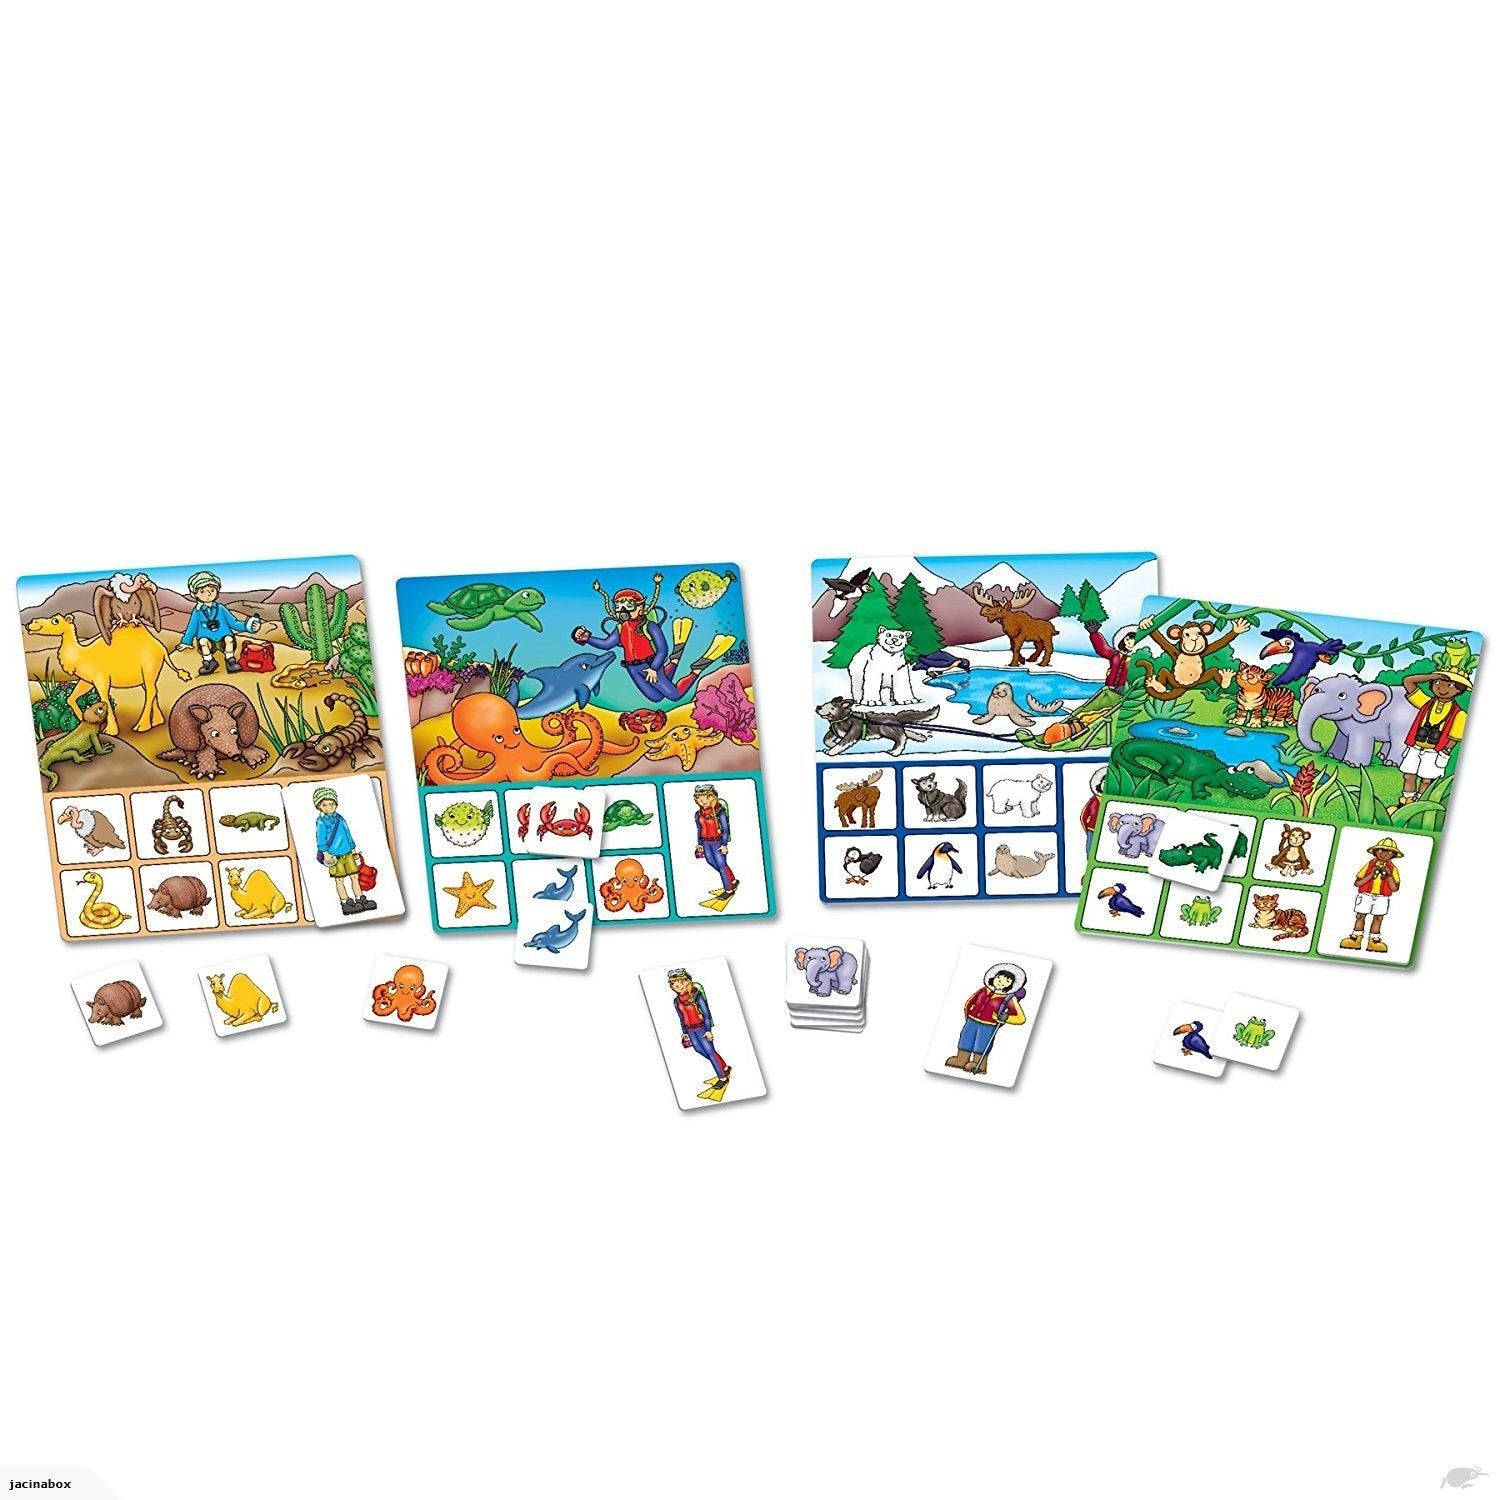 Orchard Toys Where Do I Live Lotto Gogokids Toy Shop Buy Educational Toys In New Zealand Find many great new & used options and get the best deals for orchard toys where do i live game at the best online prices at ebay! orchard toys where do i live lotto